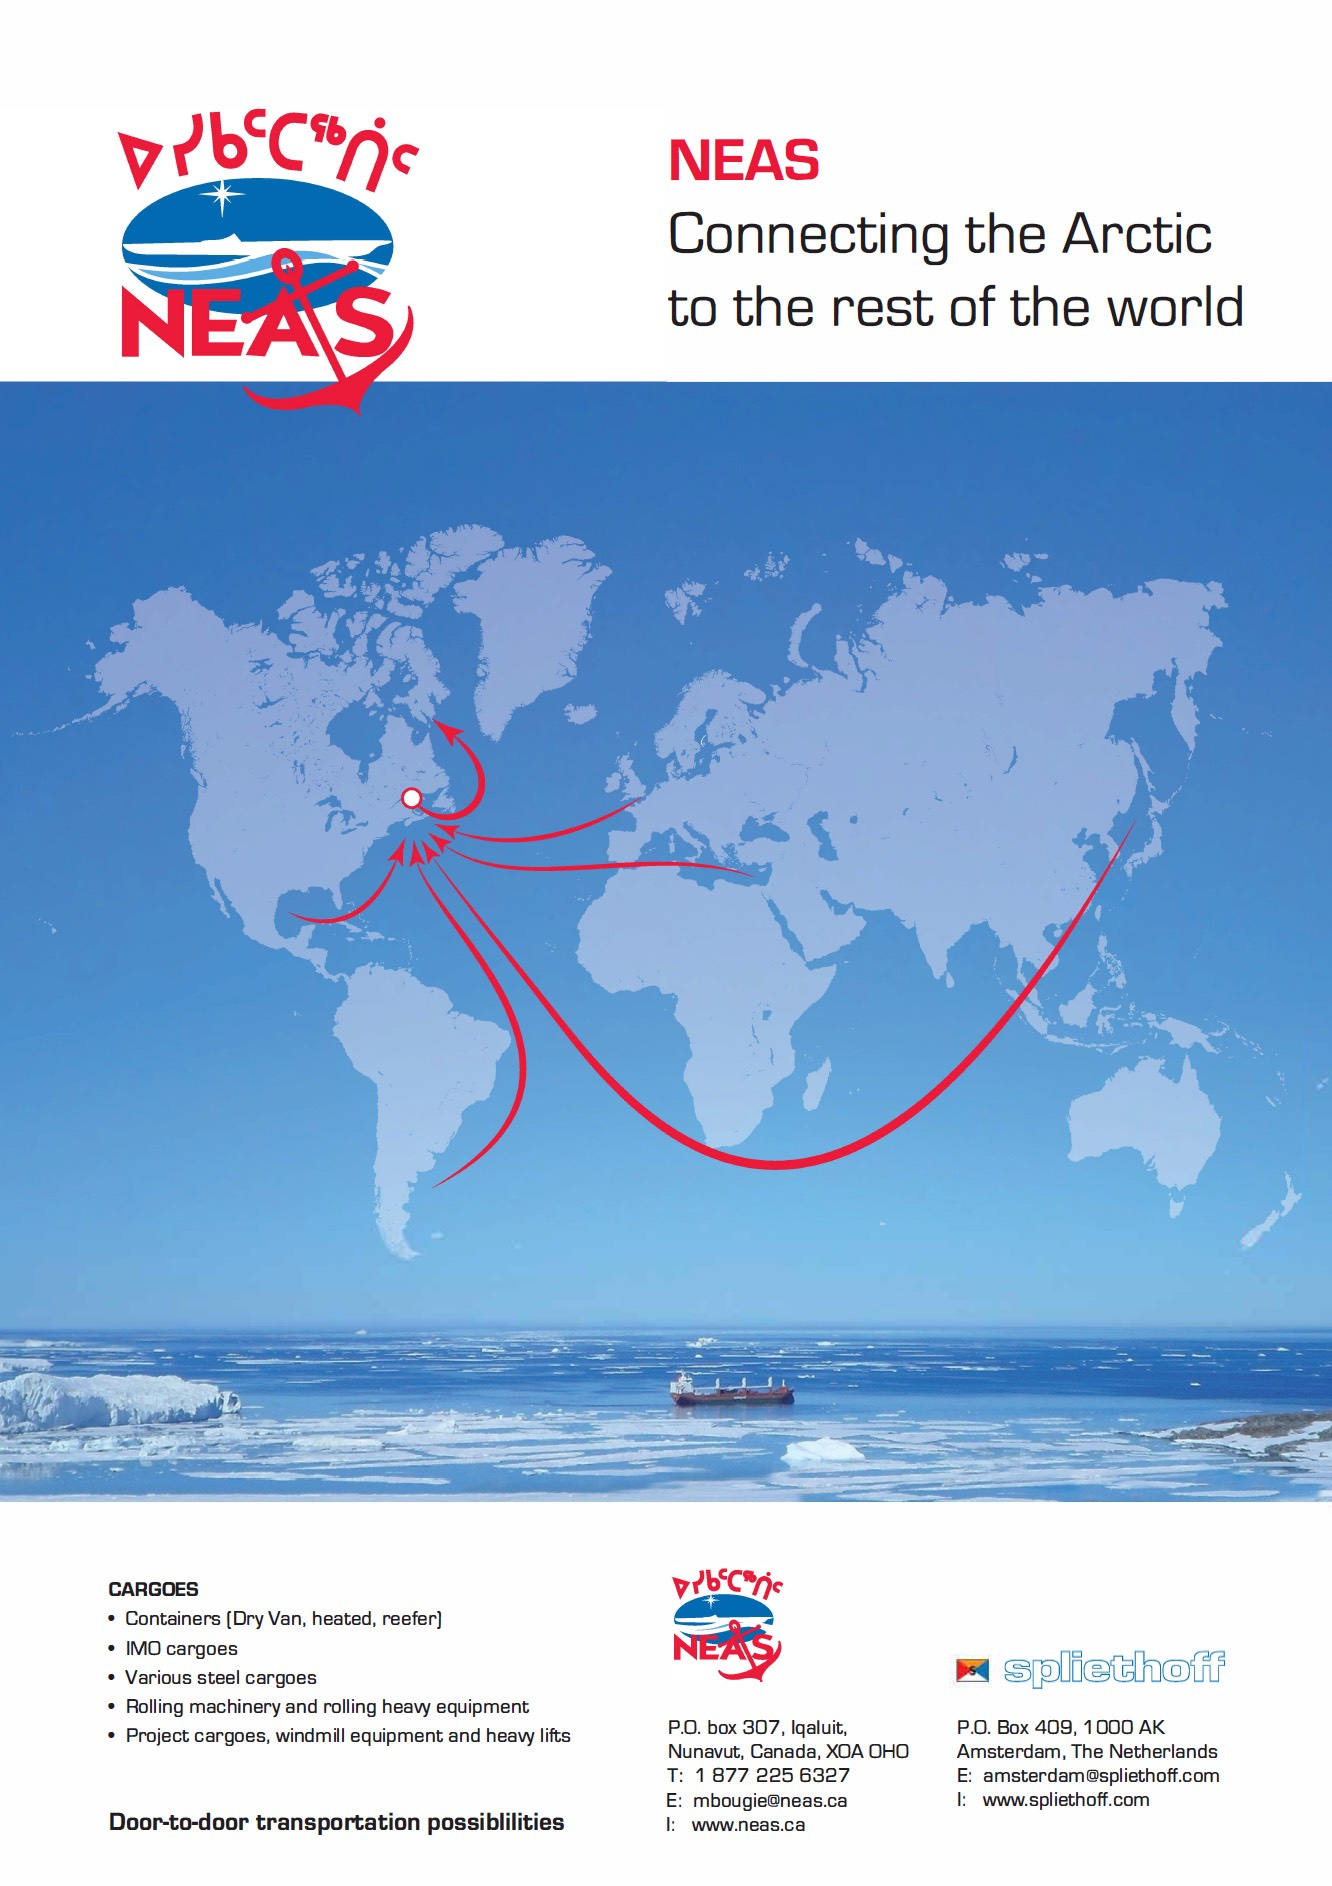 NEAS Flyer - Connecting the Arctic to the Rest of the World